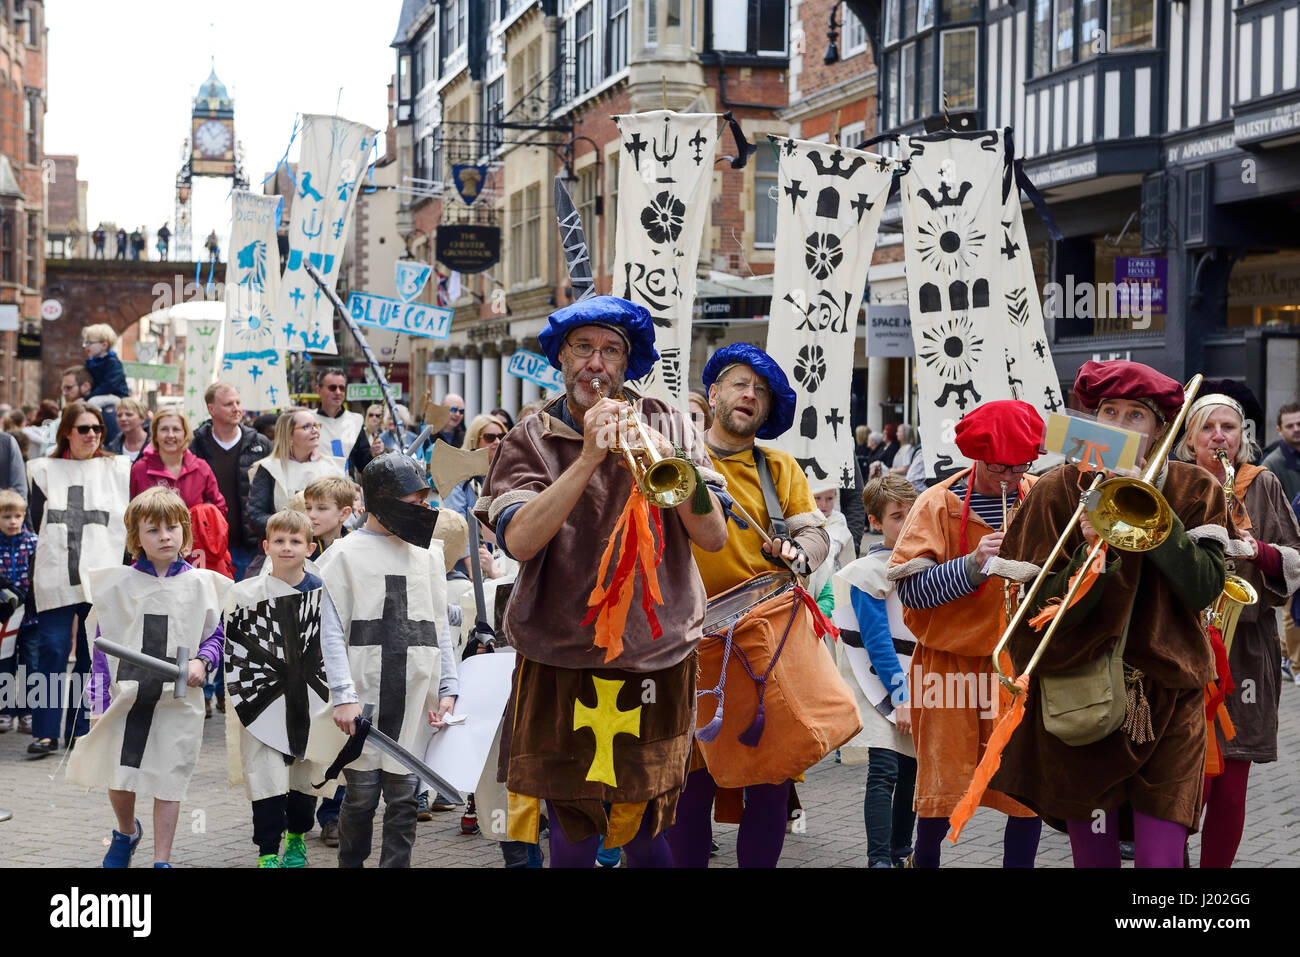 Chester, UK. 23rd April 2017. The St George's day parade through the streets of Chester with a medieval street - Stock Image